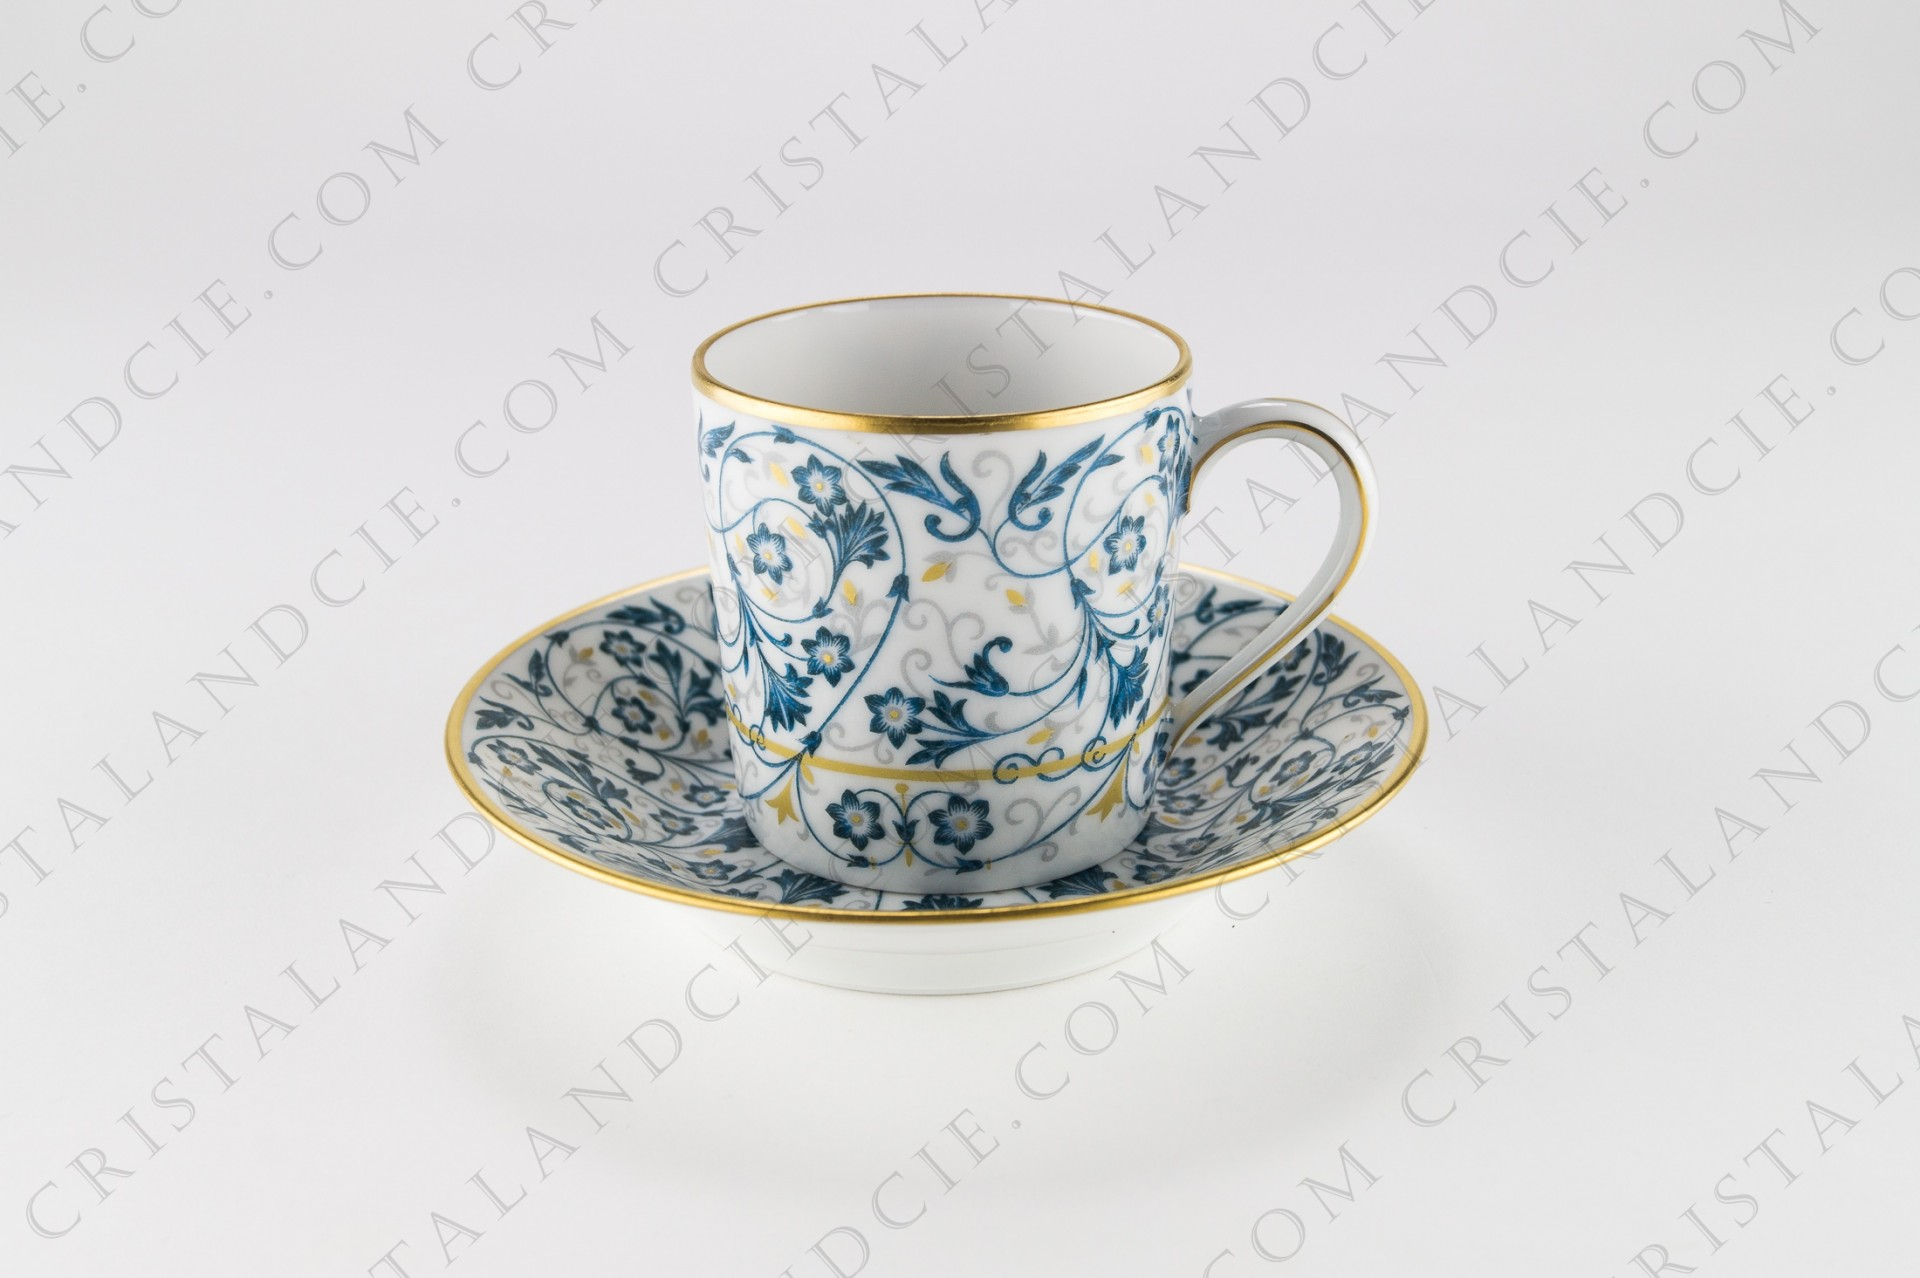 Coffee cup Séville by Haviland and Parlon